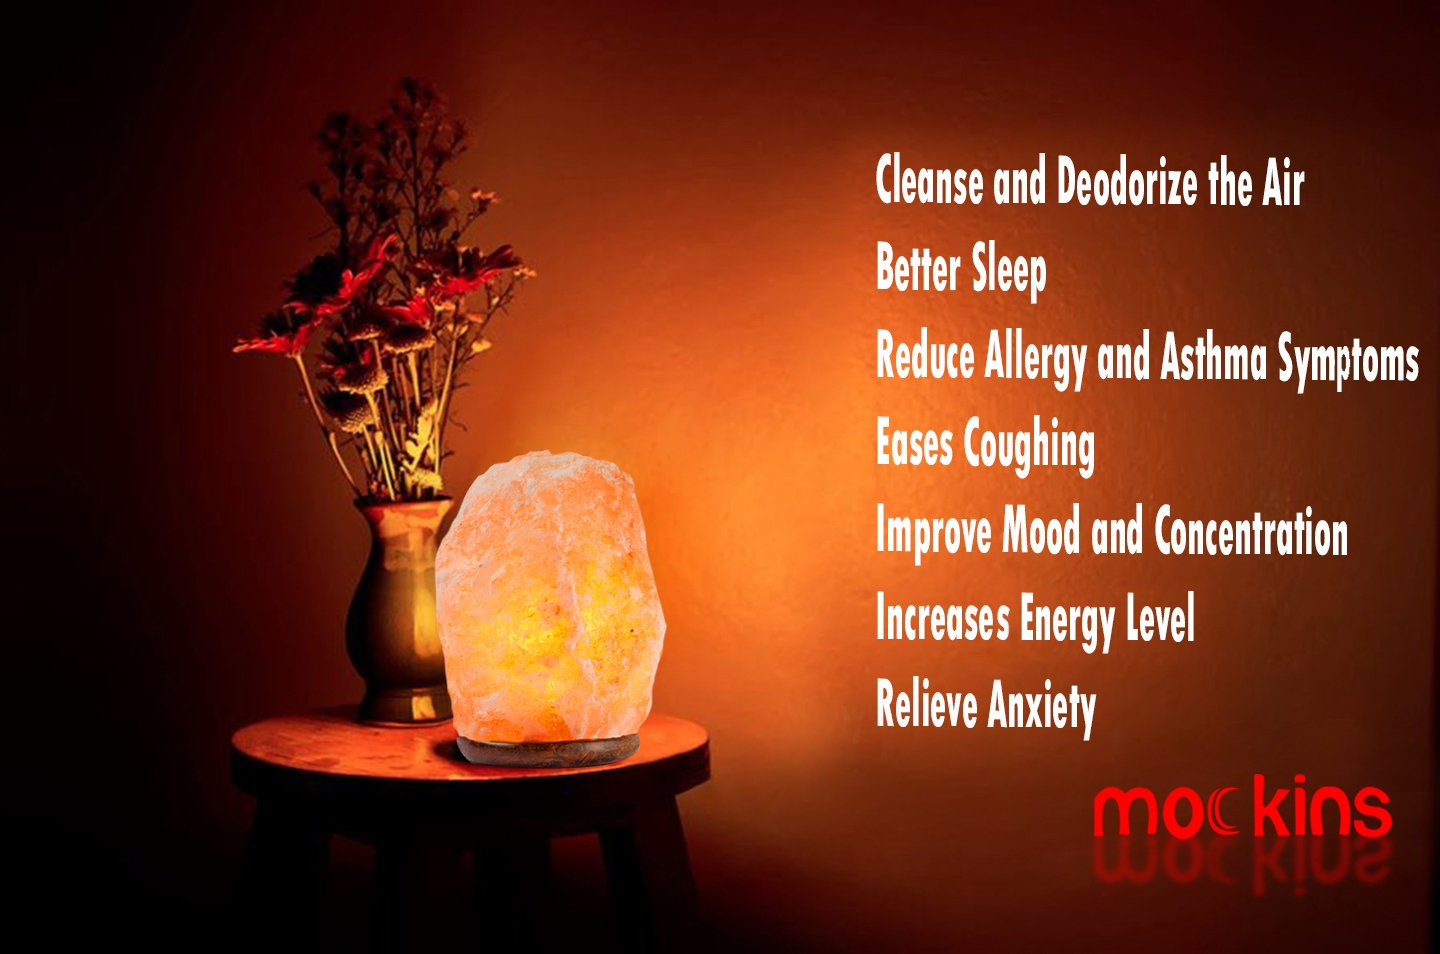 Mockins 2 PACK Natural Hand Carved Himalayan Salt Lamp With A Stylish Wood Base & Bulb With On and Off Switch 6-8 Inches 5-7 lbs by Mockins (Image #3)